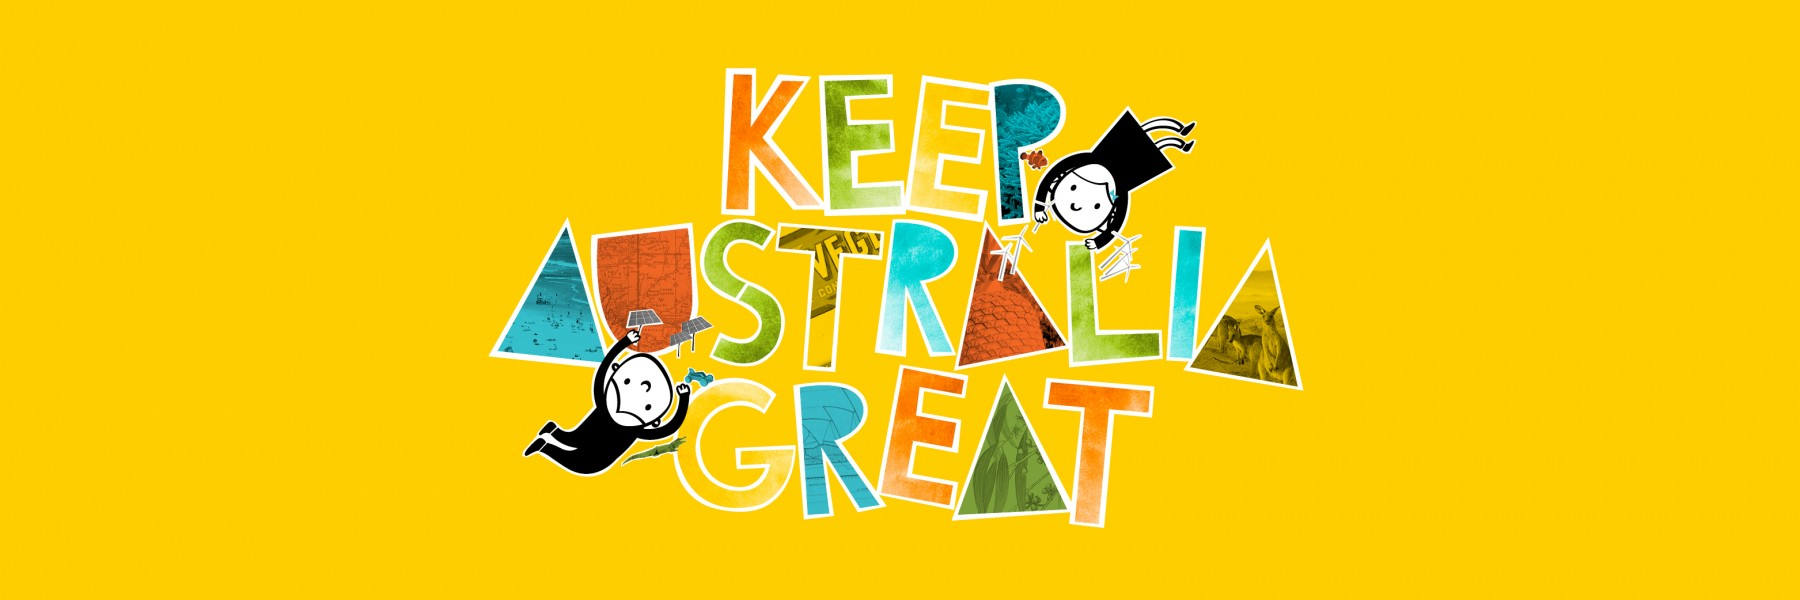 Keep_Australia_great_banner_1500_500_nologo_rgb